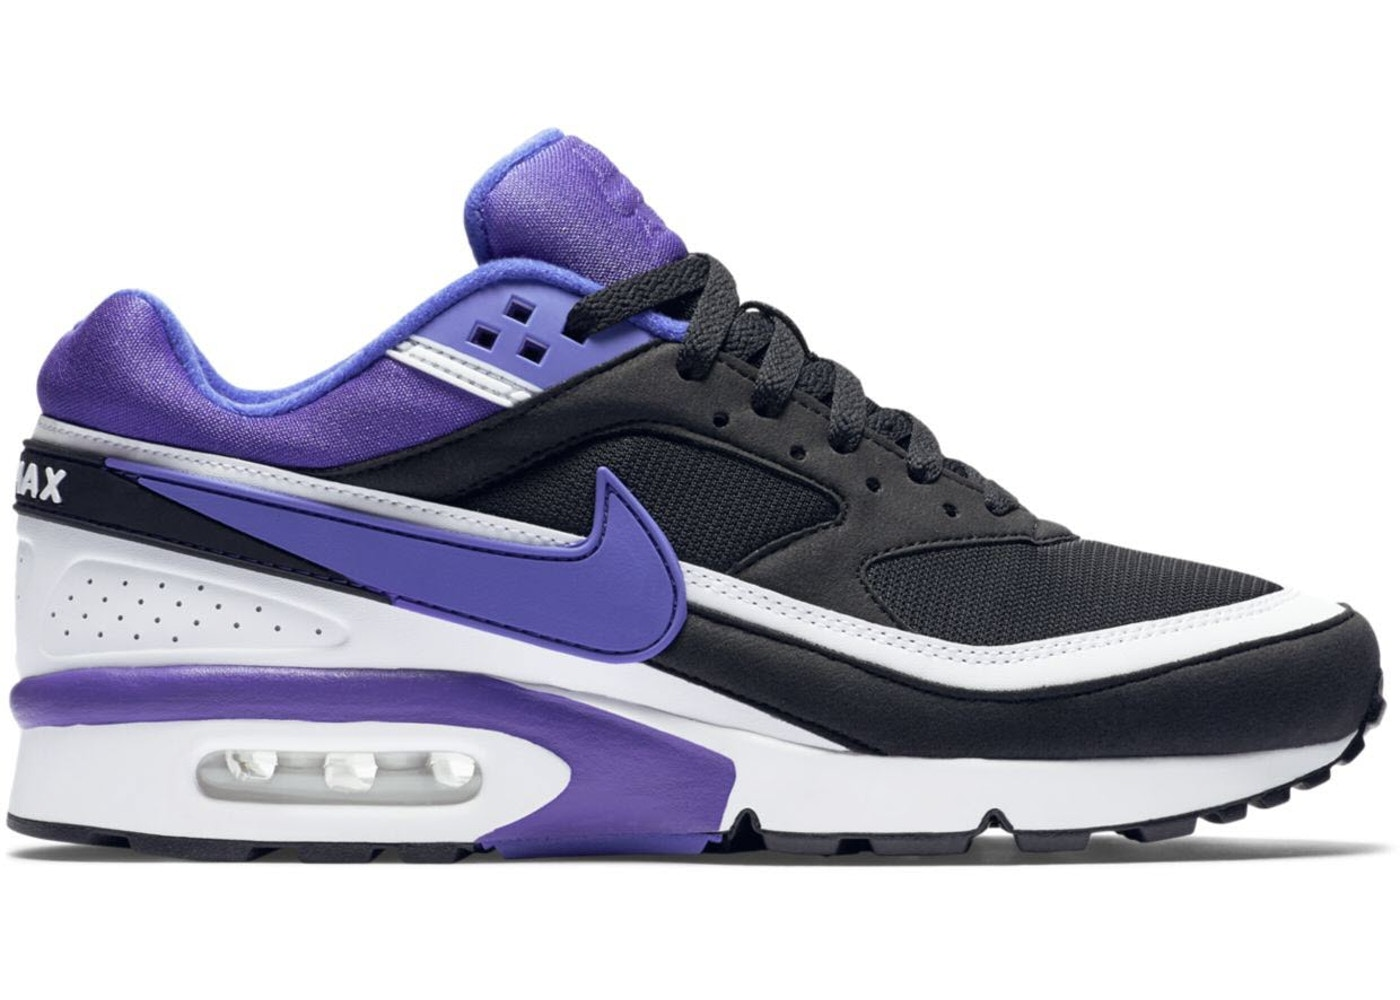 meilleur service 60aa4 a3151 Air Max BW Persian Violet (2016)